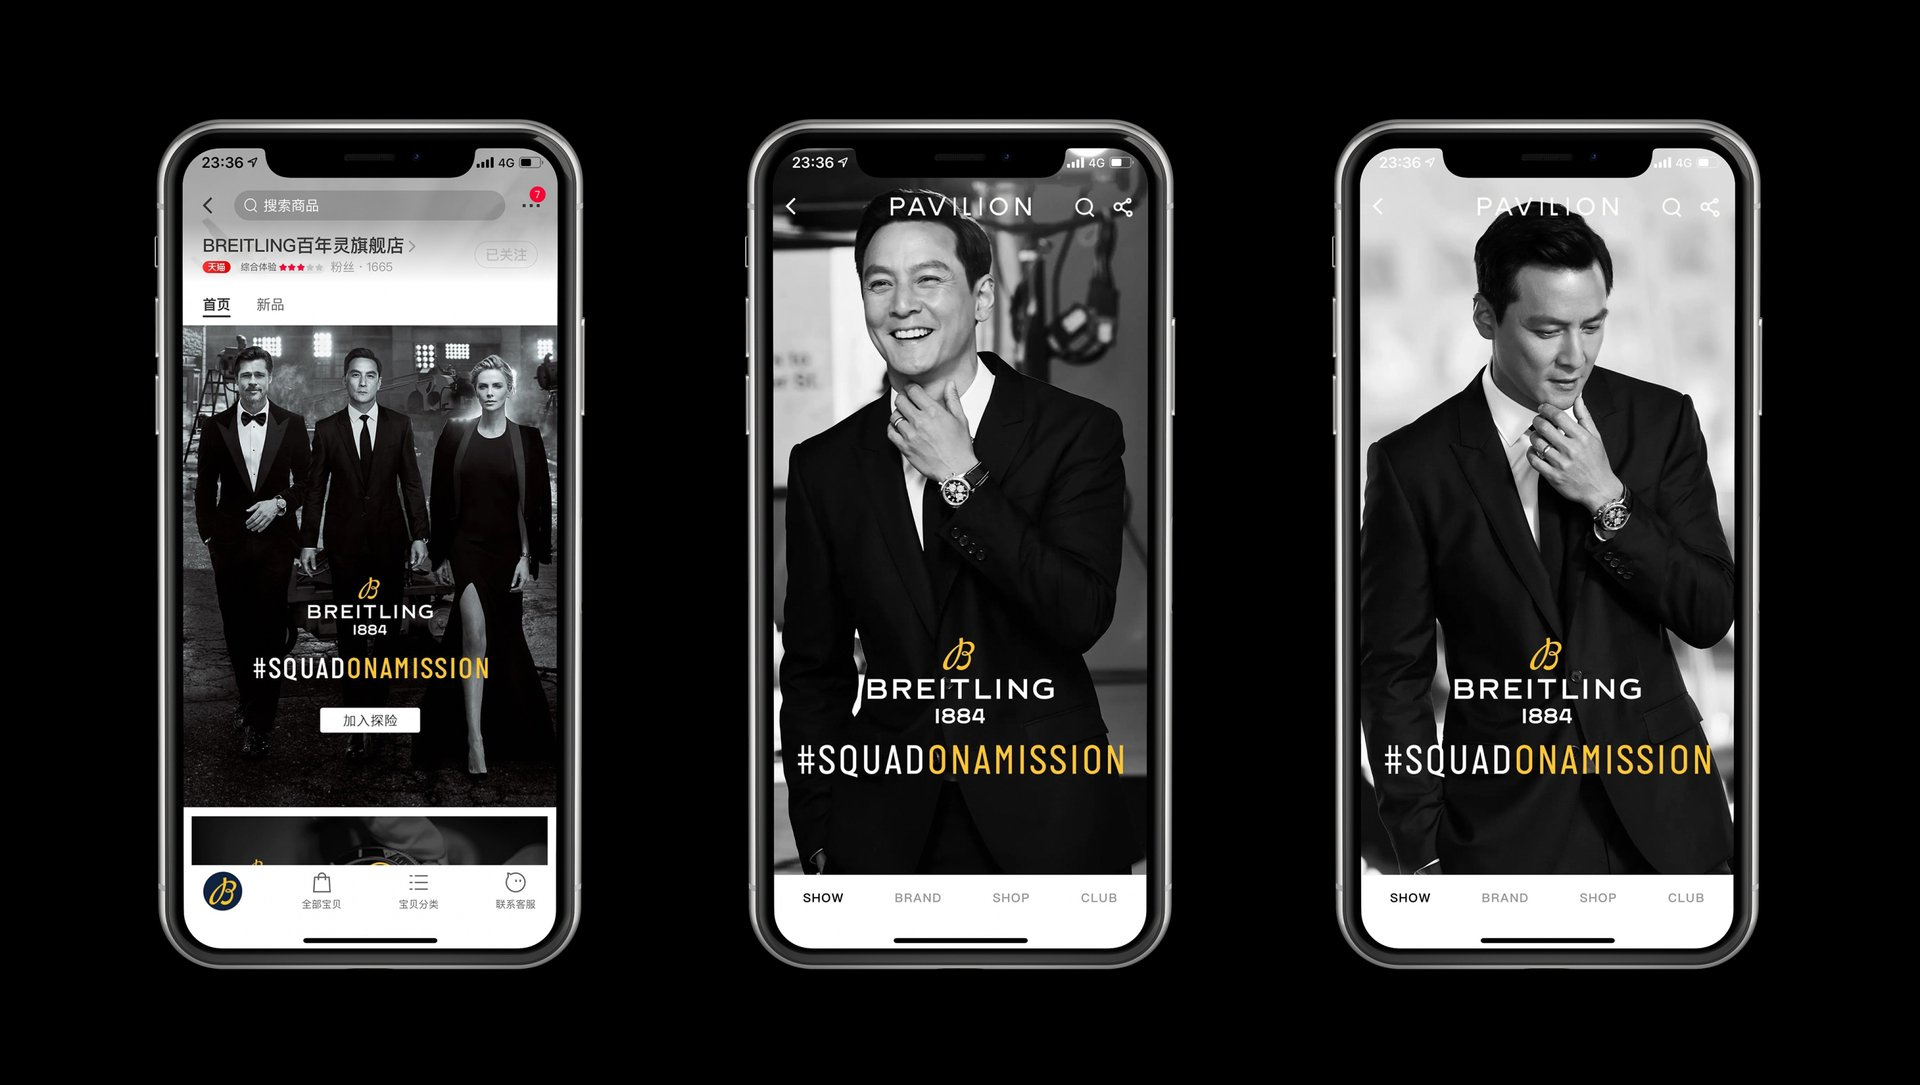 Breitling's TMall store as viewed on an iPhone.